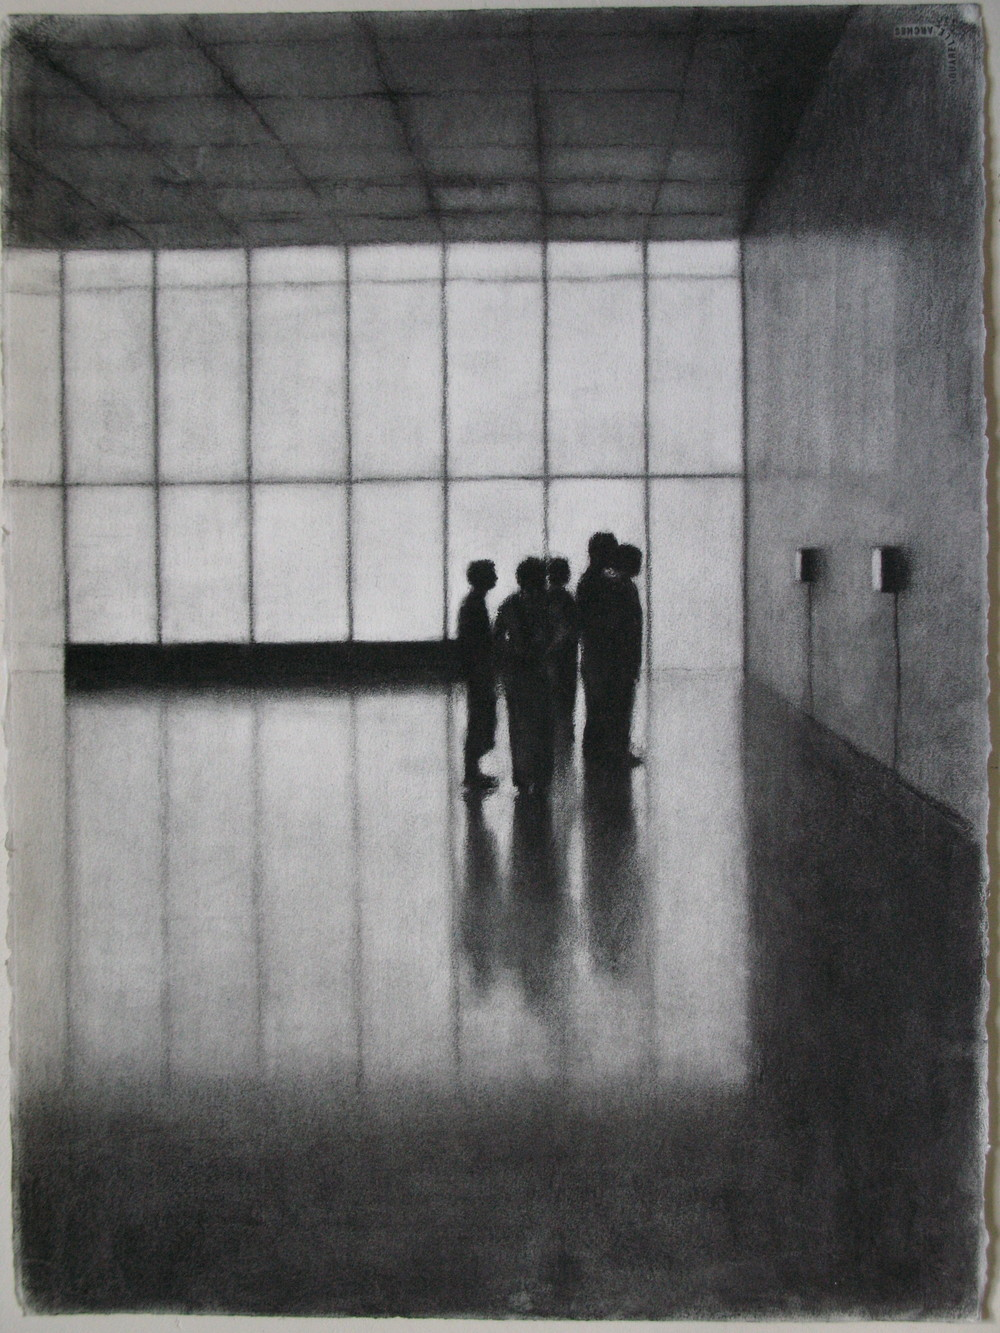 Kunsthaus Bregenz I, 2007, willow charcoal on paper, 56cm x 75cm.